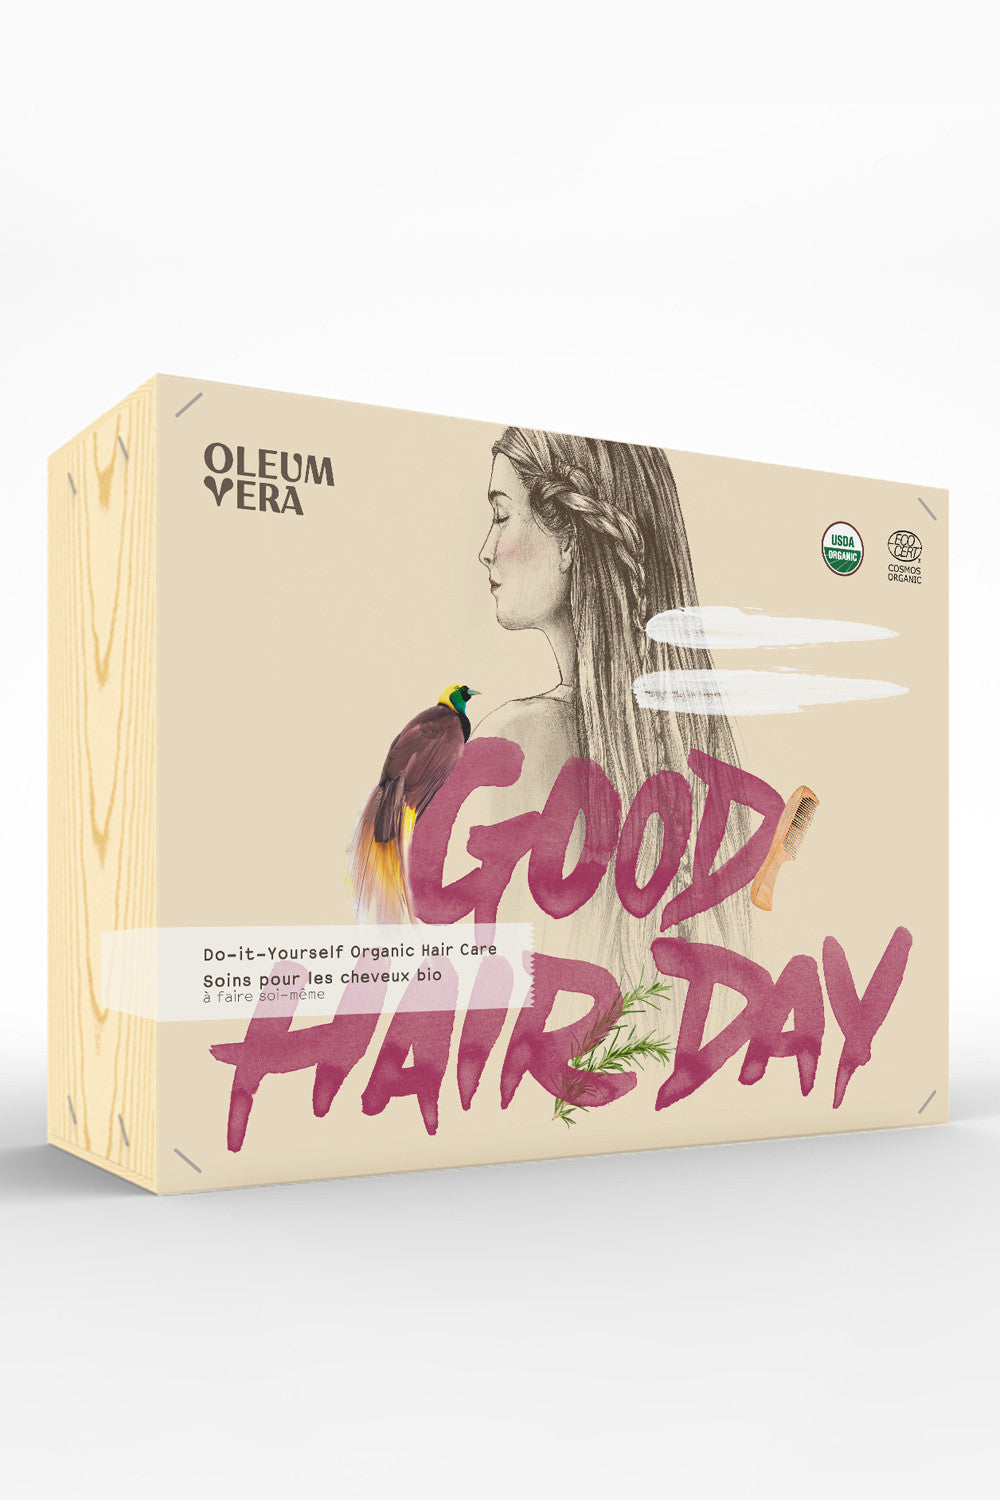 Oleum vera do it yourself organic hair care kit shop online oleum vera do it yourself organic hair care kit solutioingenieria Image collections